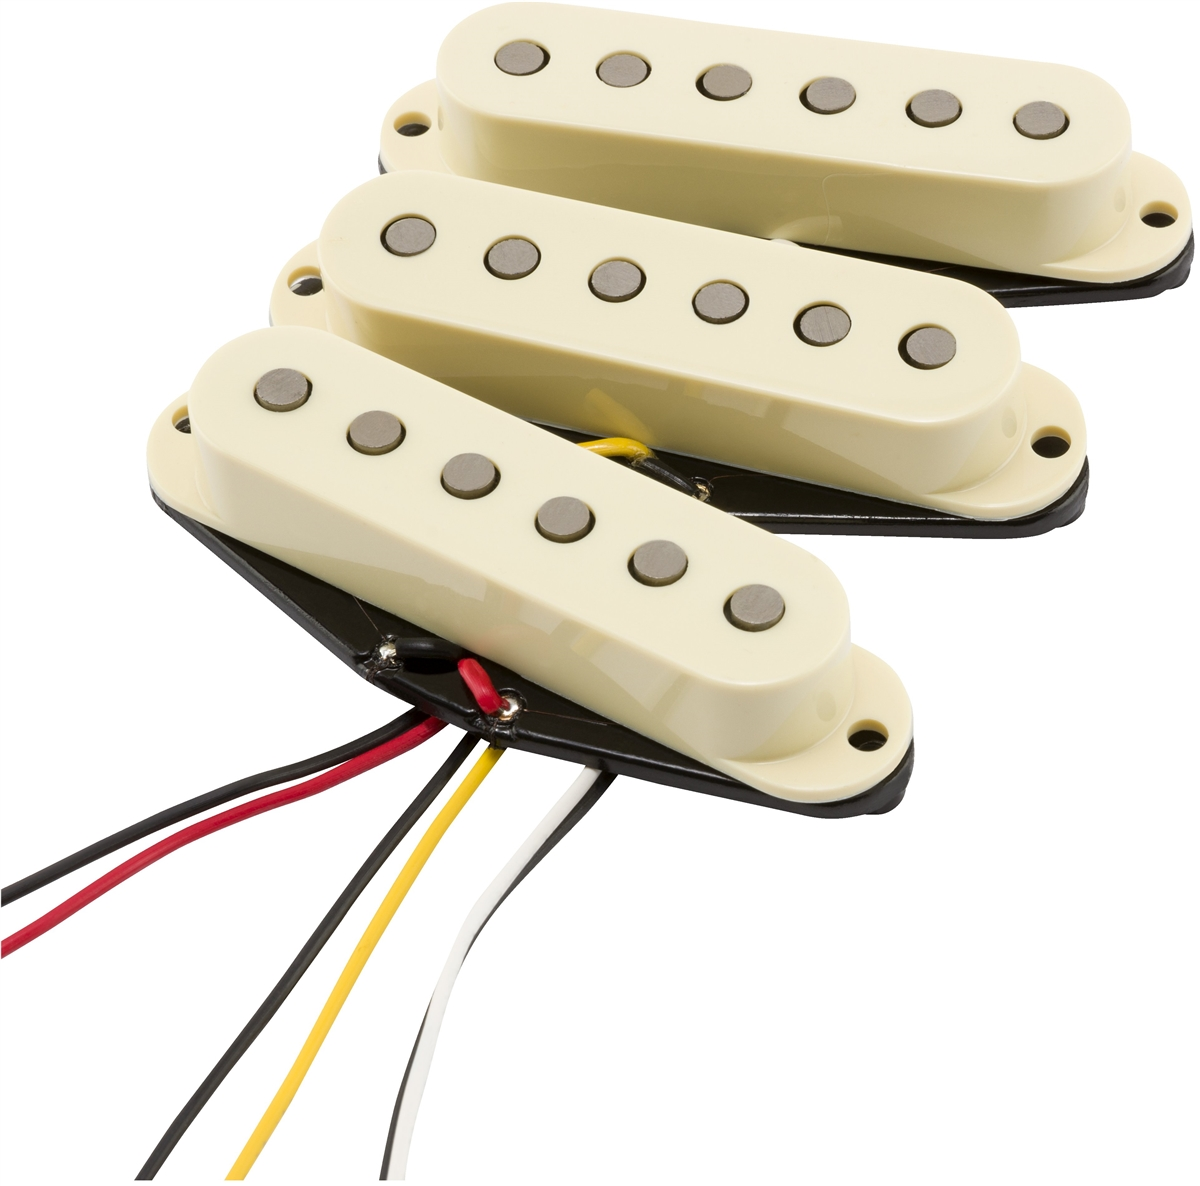 Yosemite Strat Pickup Set Parts